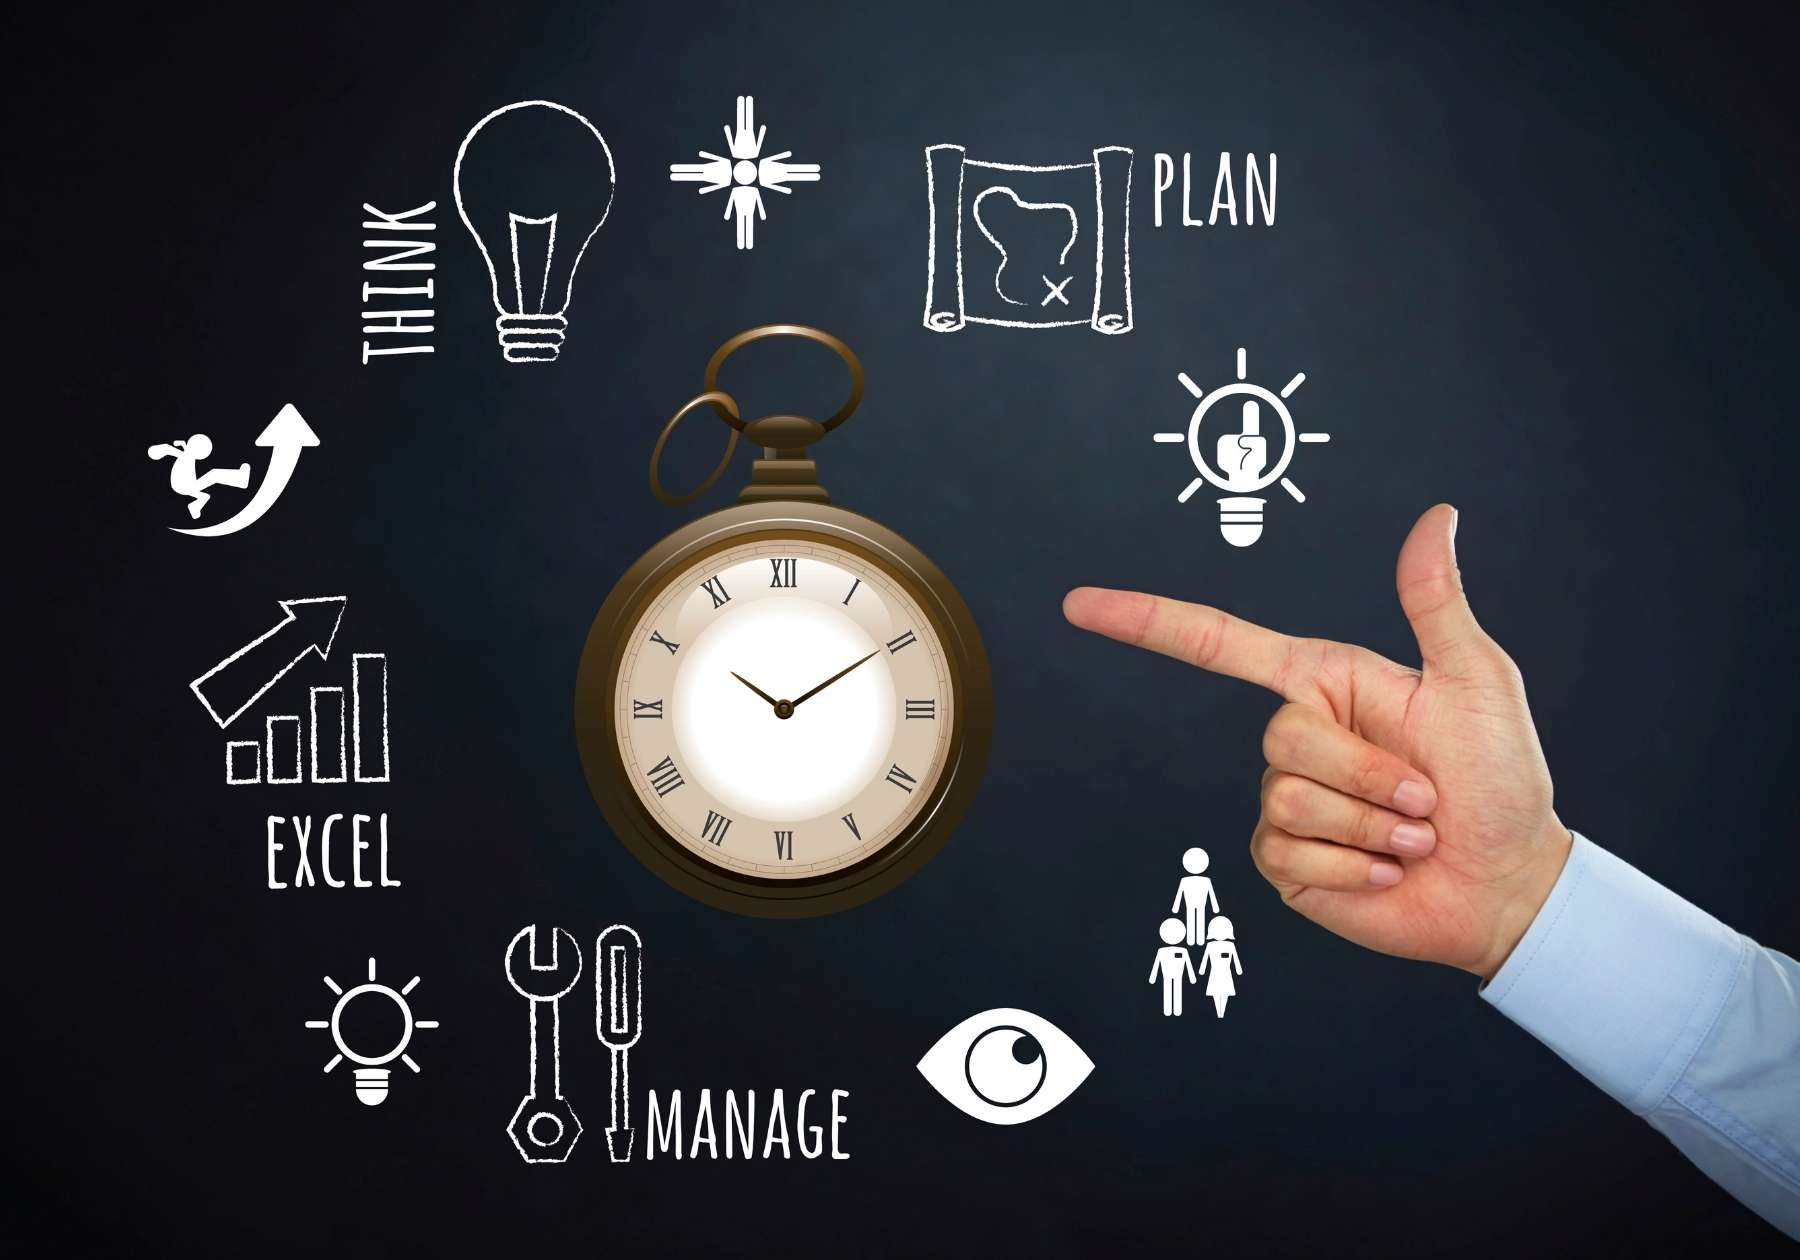 How To Improve Time Management While Working From Home (Tips + Tools)